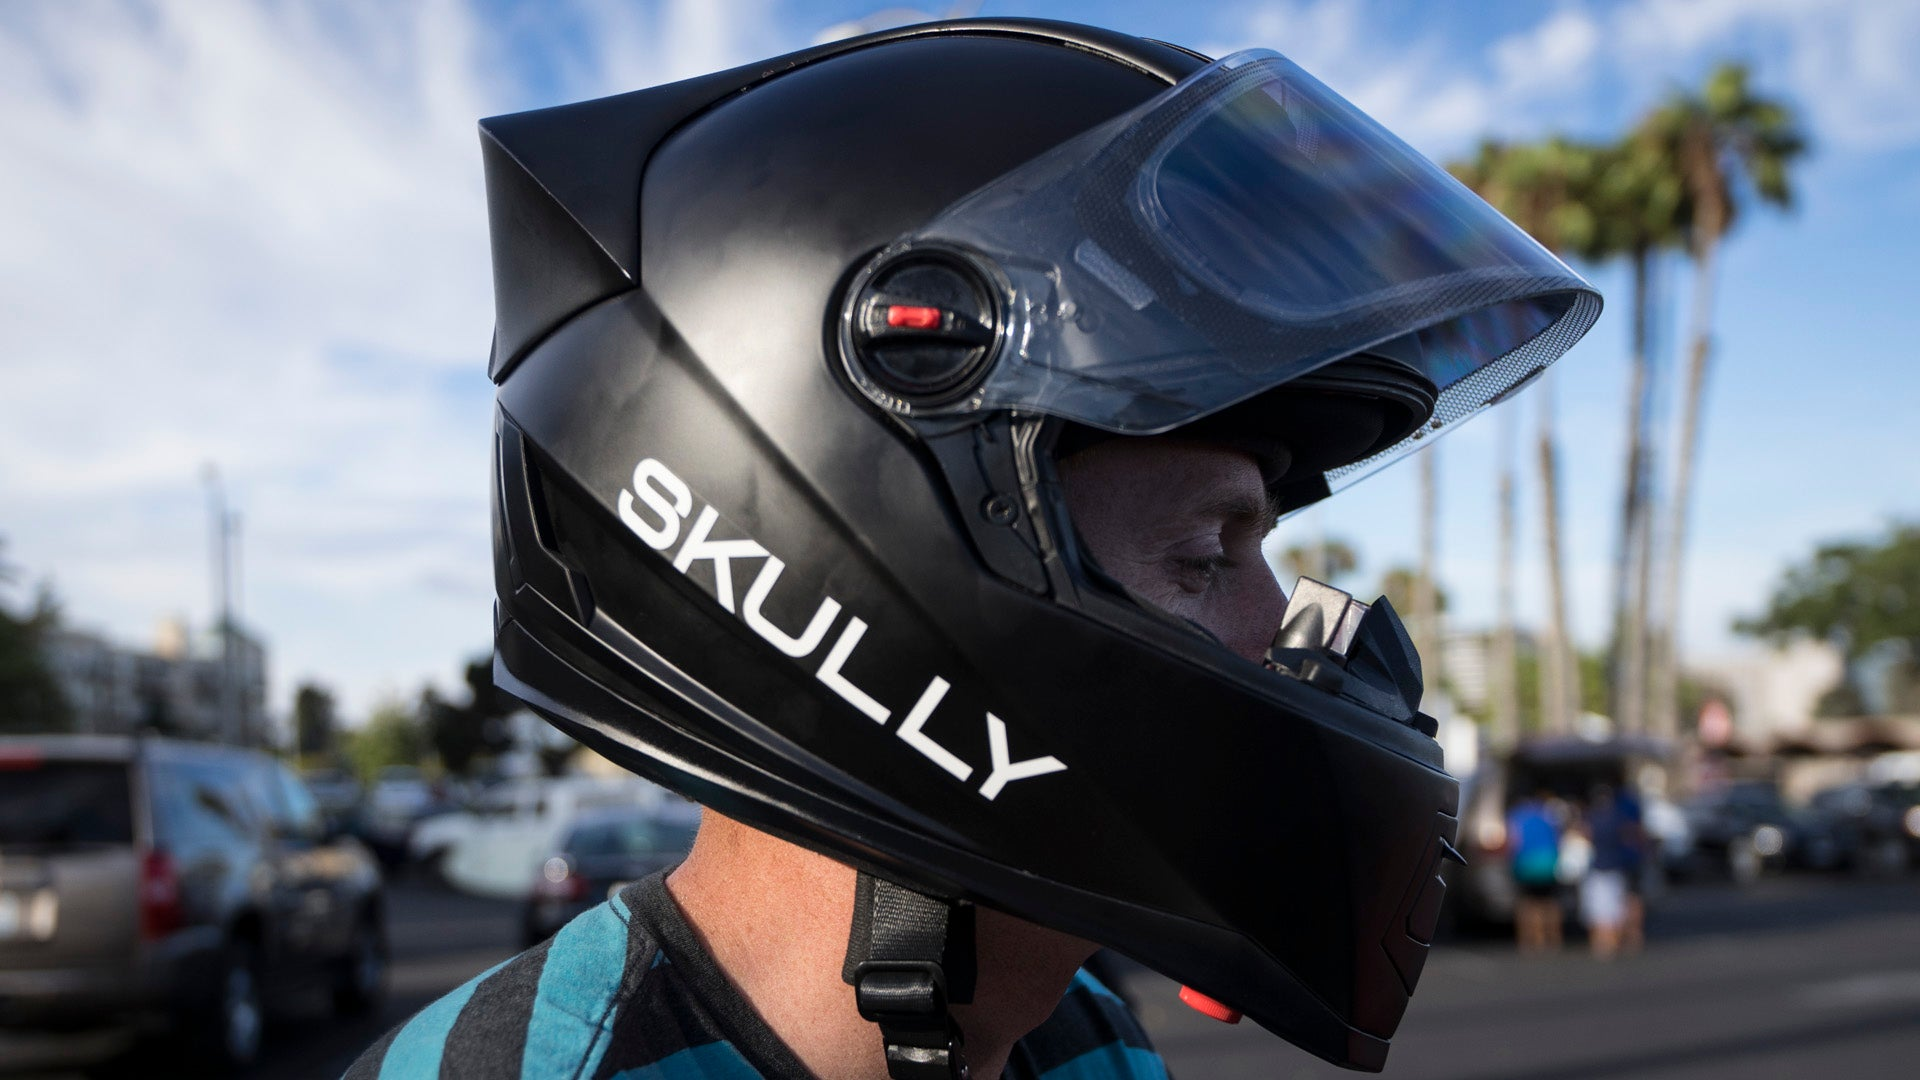 Hands On With The World's First HUD Motorcycle Helmet